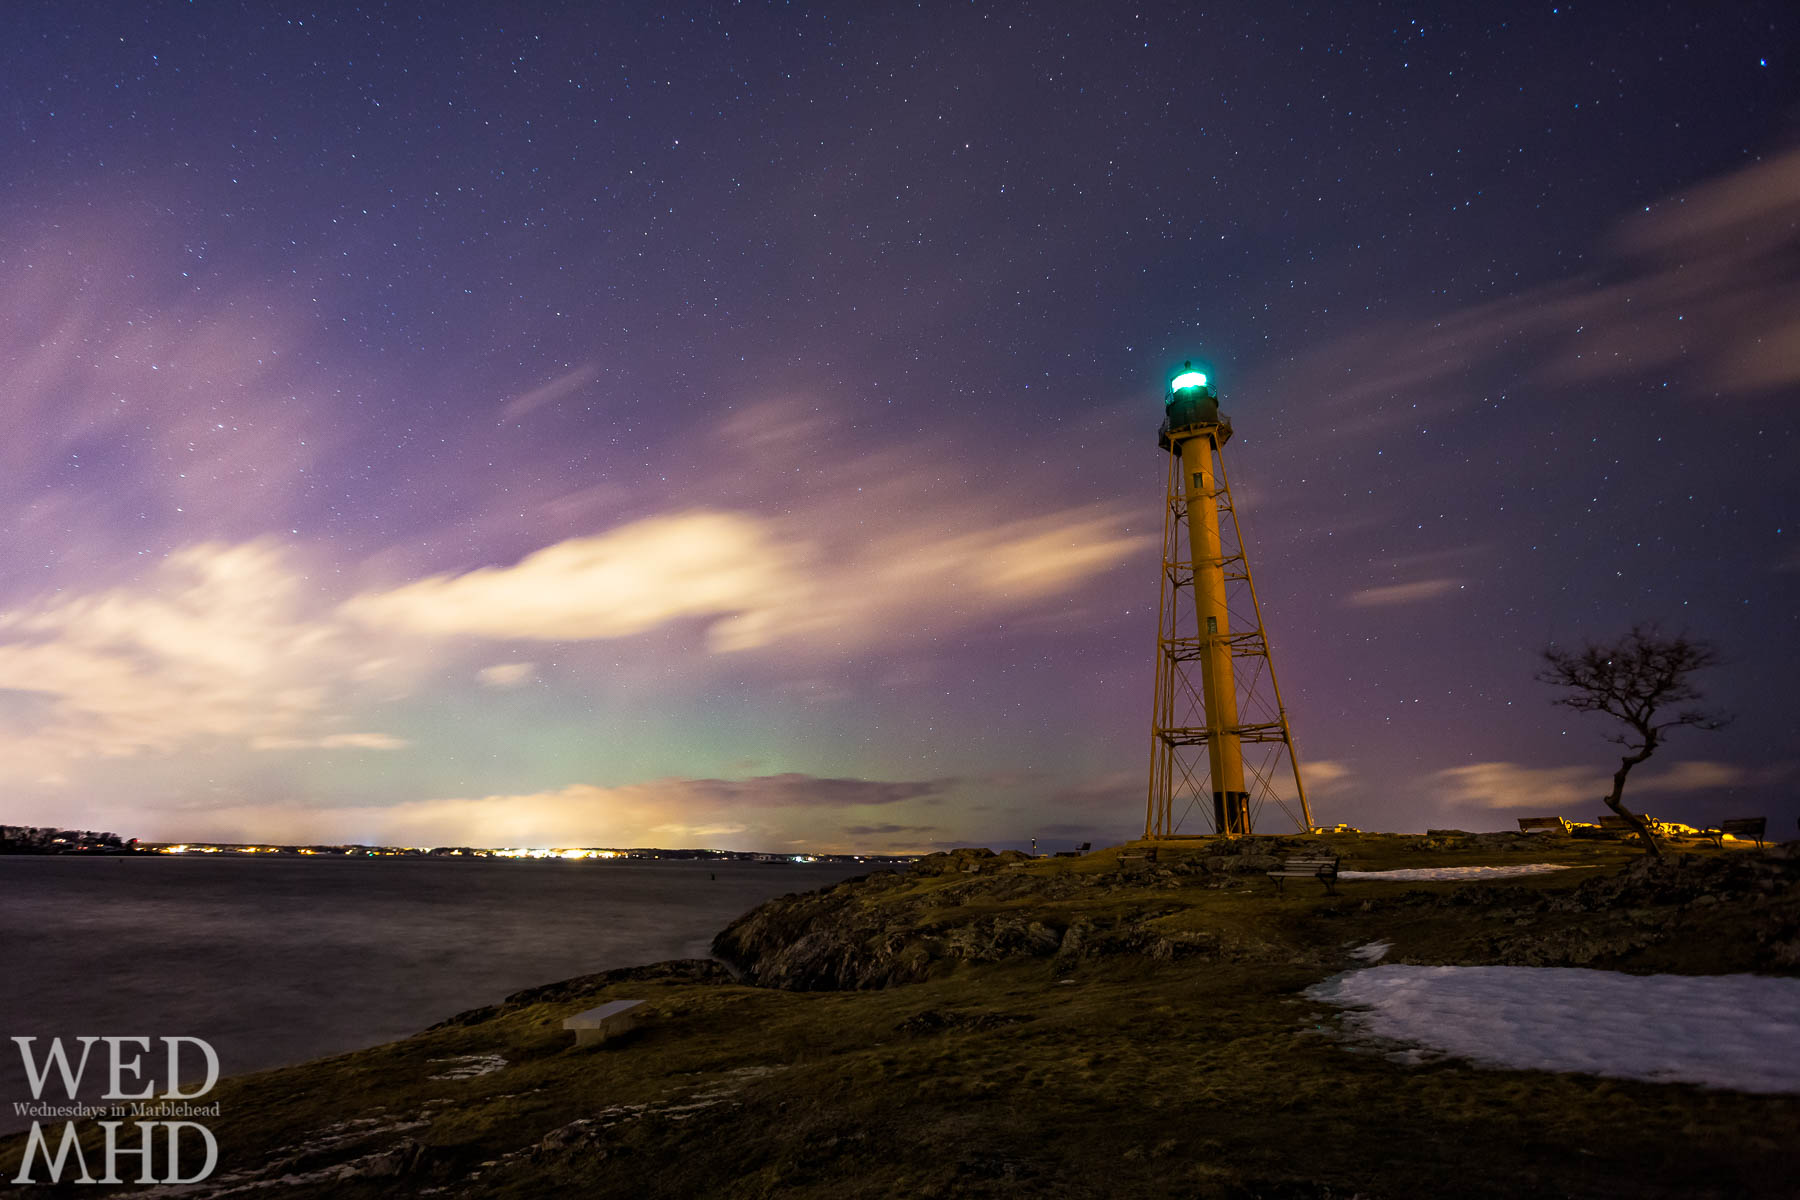 In 2015, the aurora borealis appeared in the night sky over Marblehead on two occasions as a result of strong solar storms